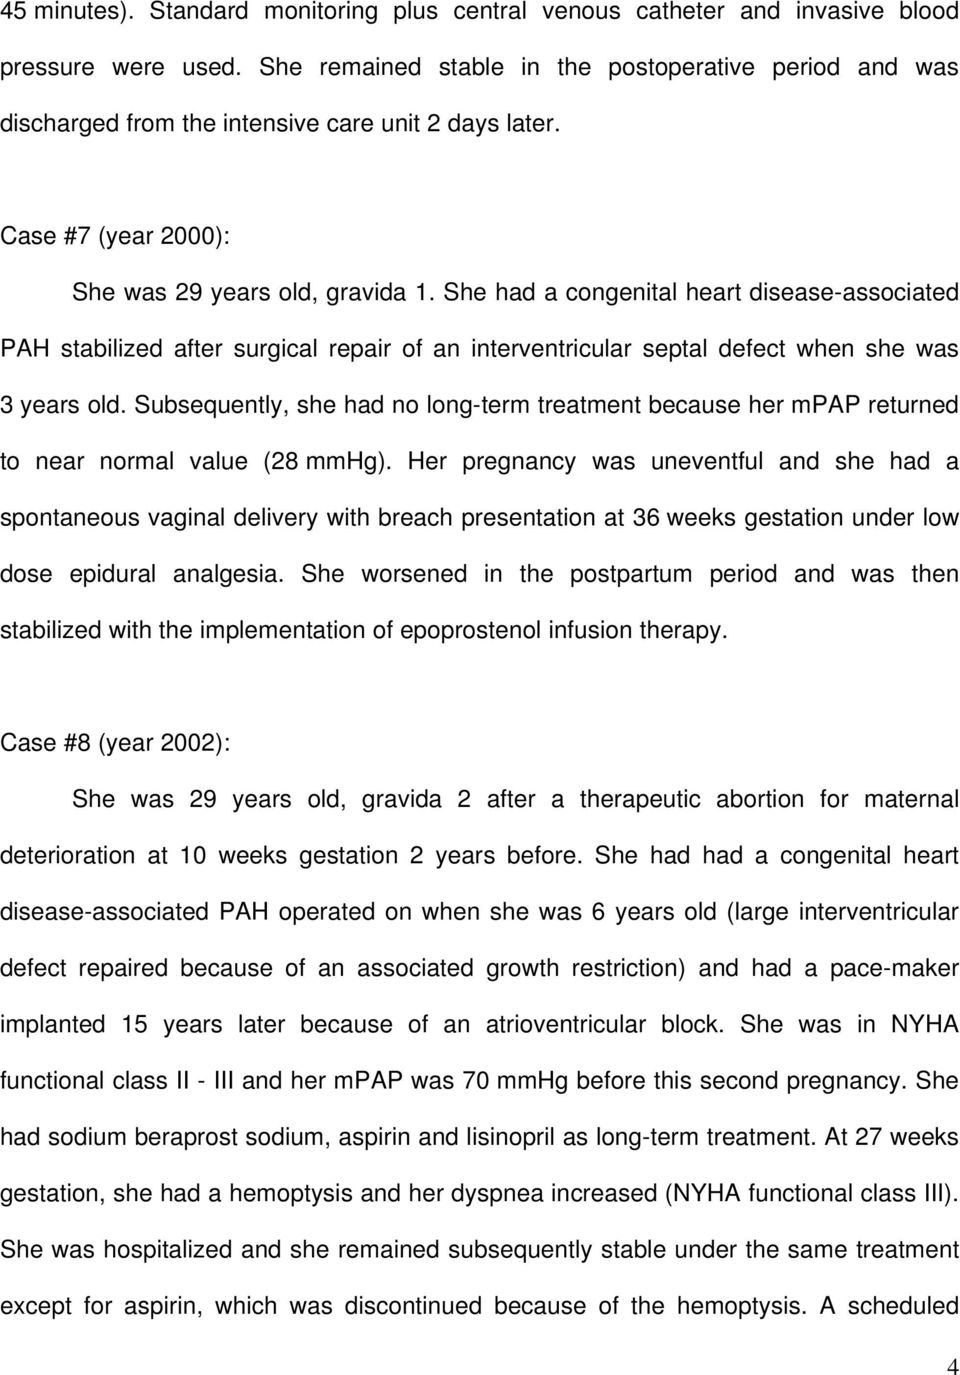 She had a congenital heart disease-associated PAH stabilized after surgical repair of an interventricular septal defect when she was 3 years old.